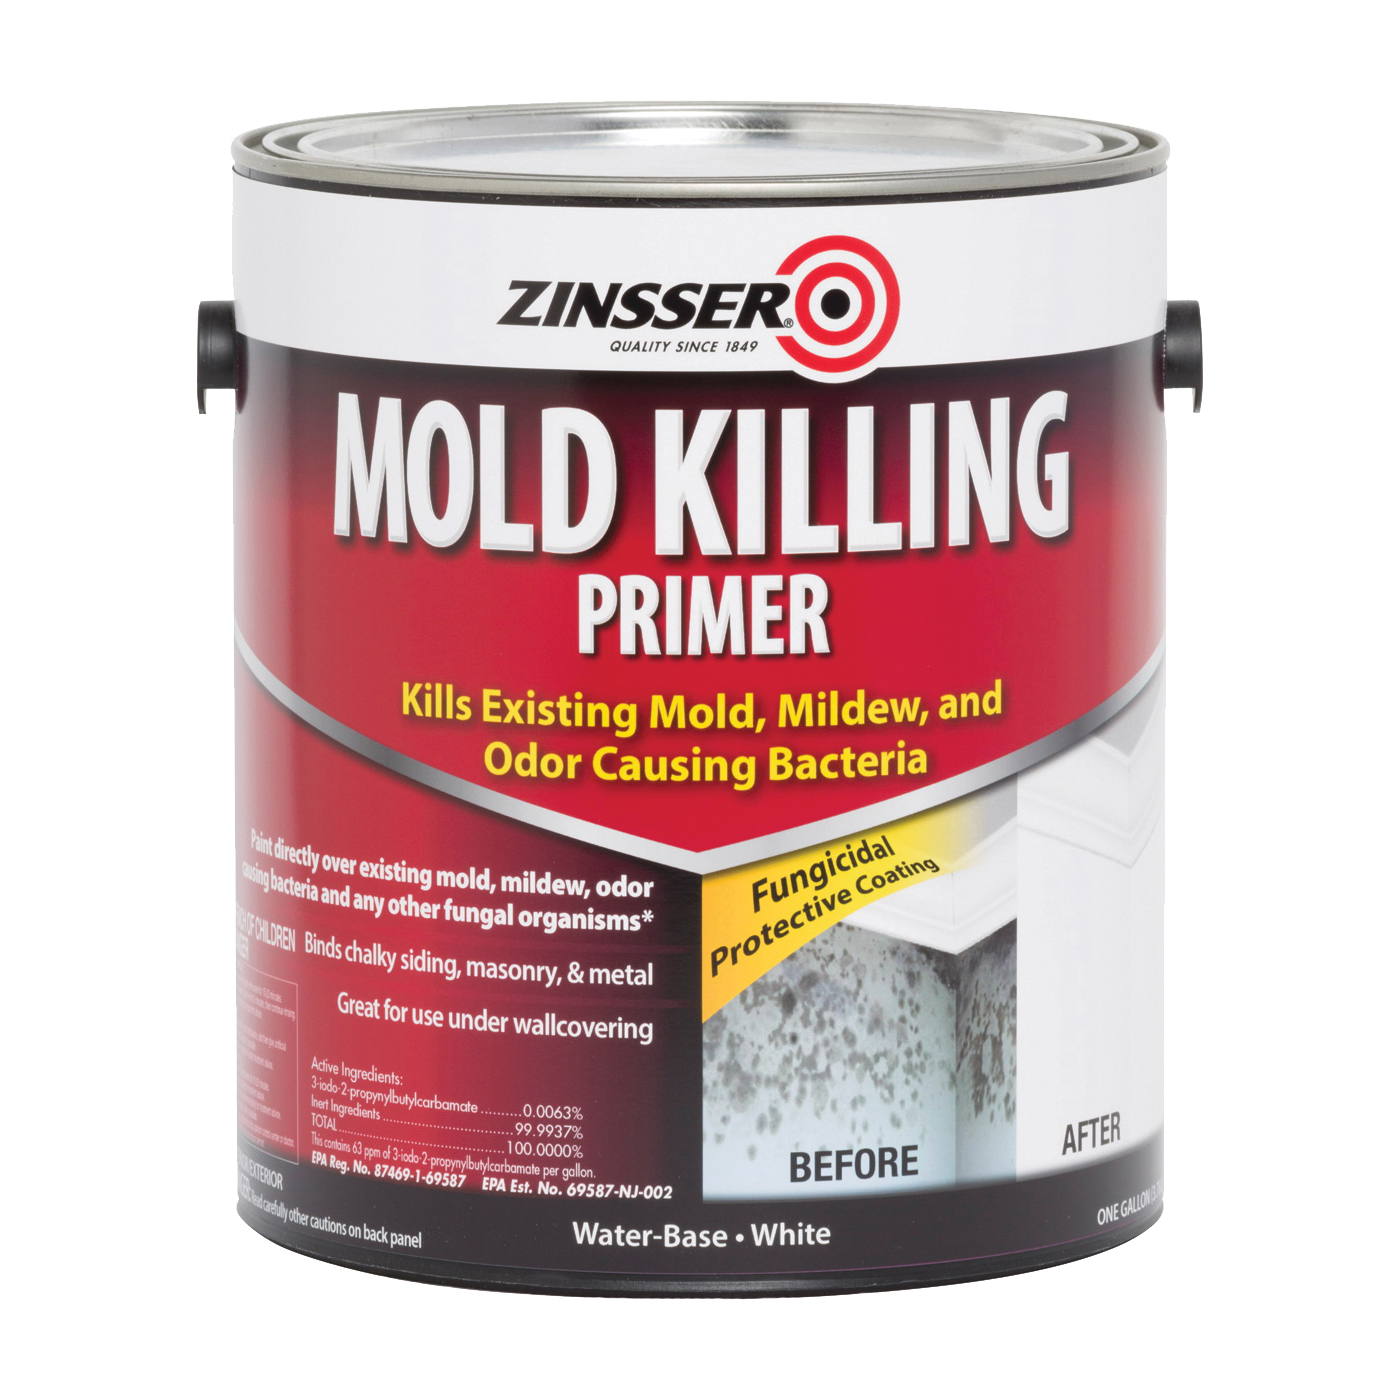 Picture of ZINSSER 276049 Mold Killing Primer, Flat, White, 1 gal, Can